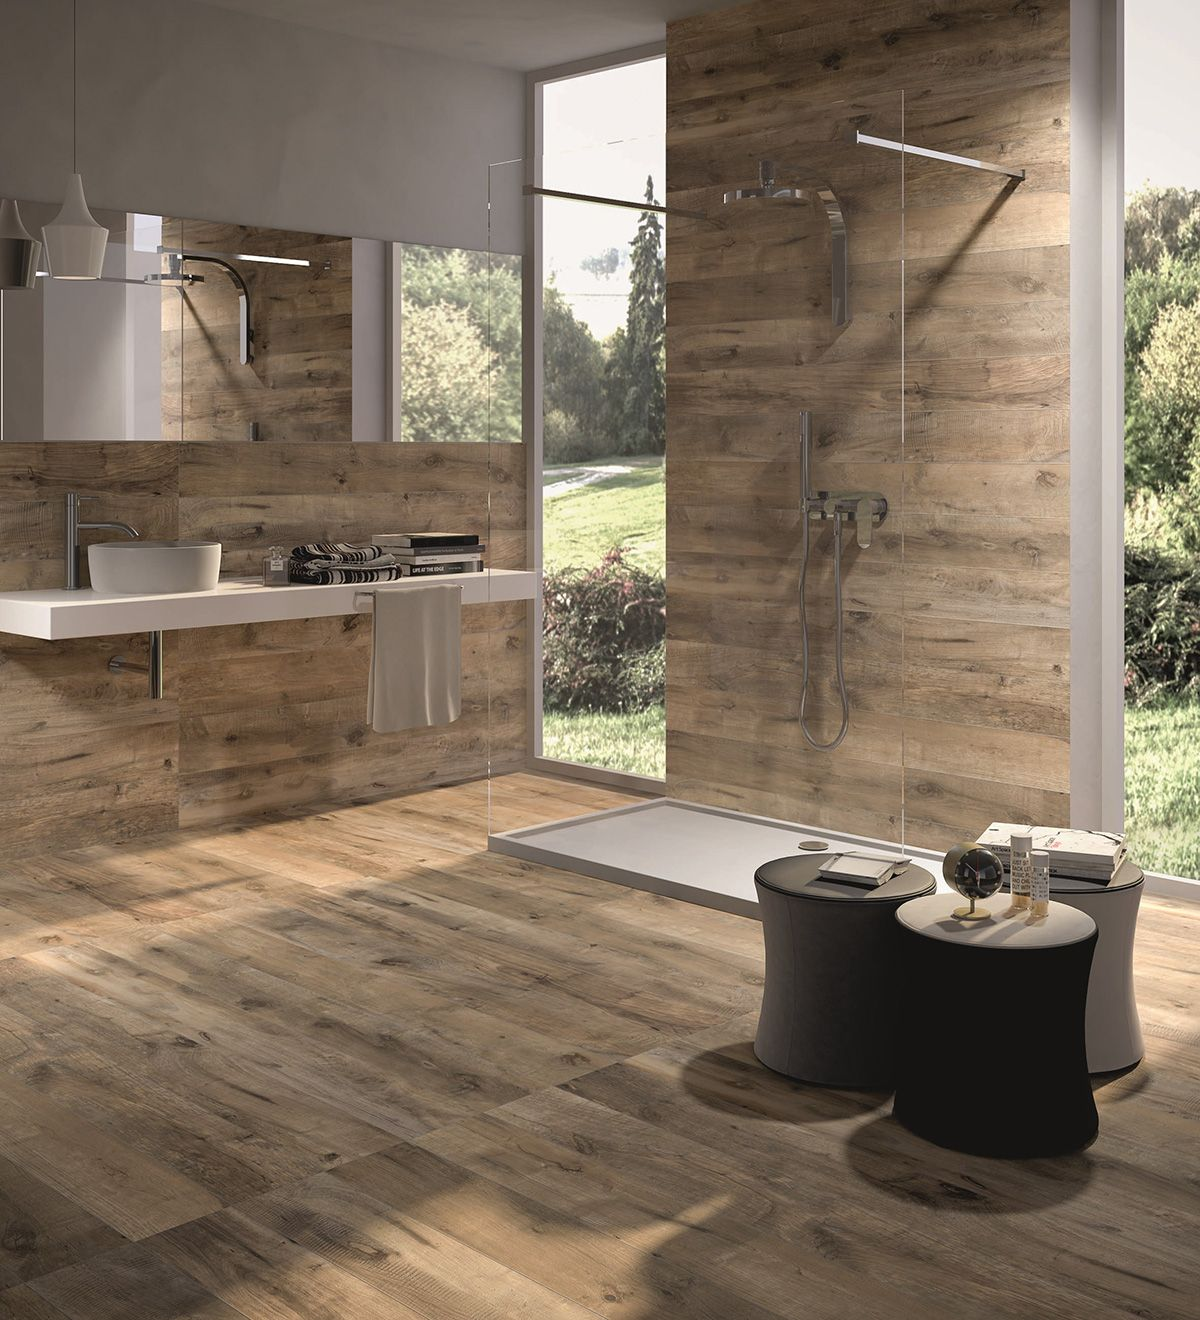 Ceramic Tile Replicates Wood: Dakota by Flaviker | Wood grain ...